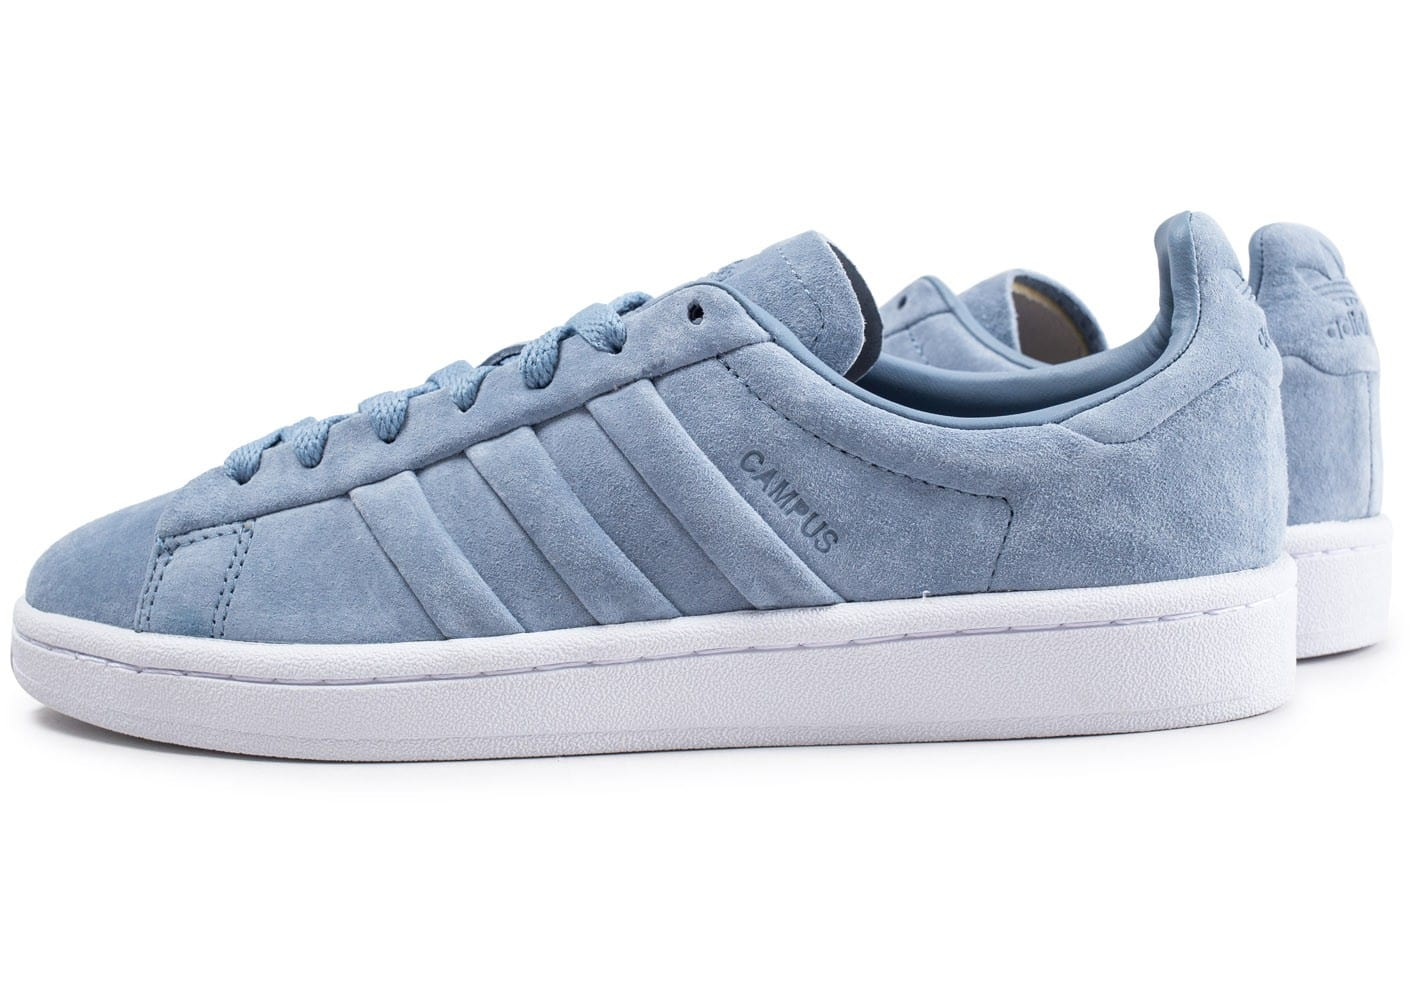 adidas Campus Stitch and Turn bleu Chaussures Baskets homme